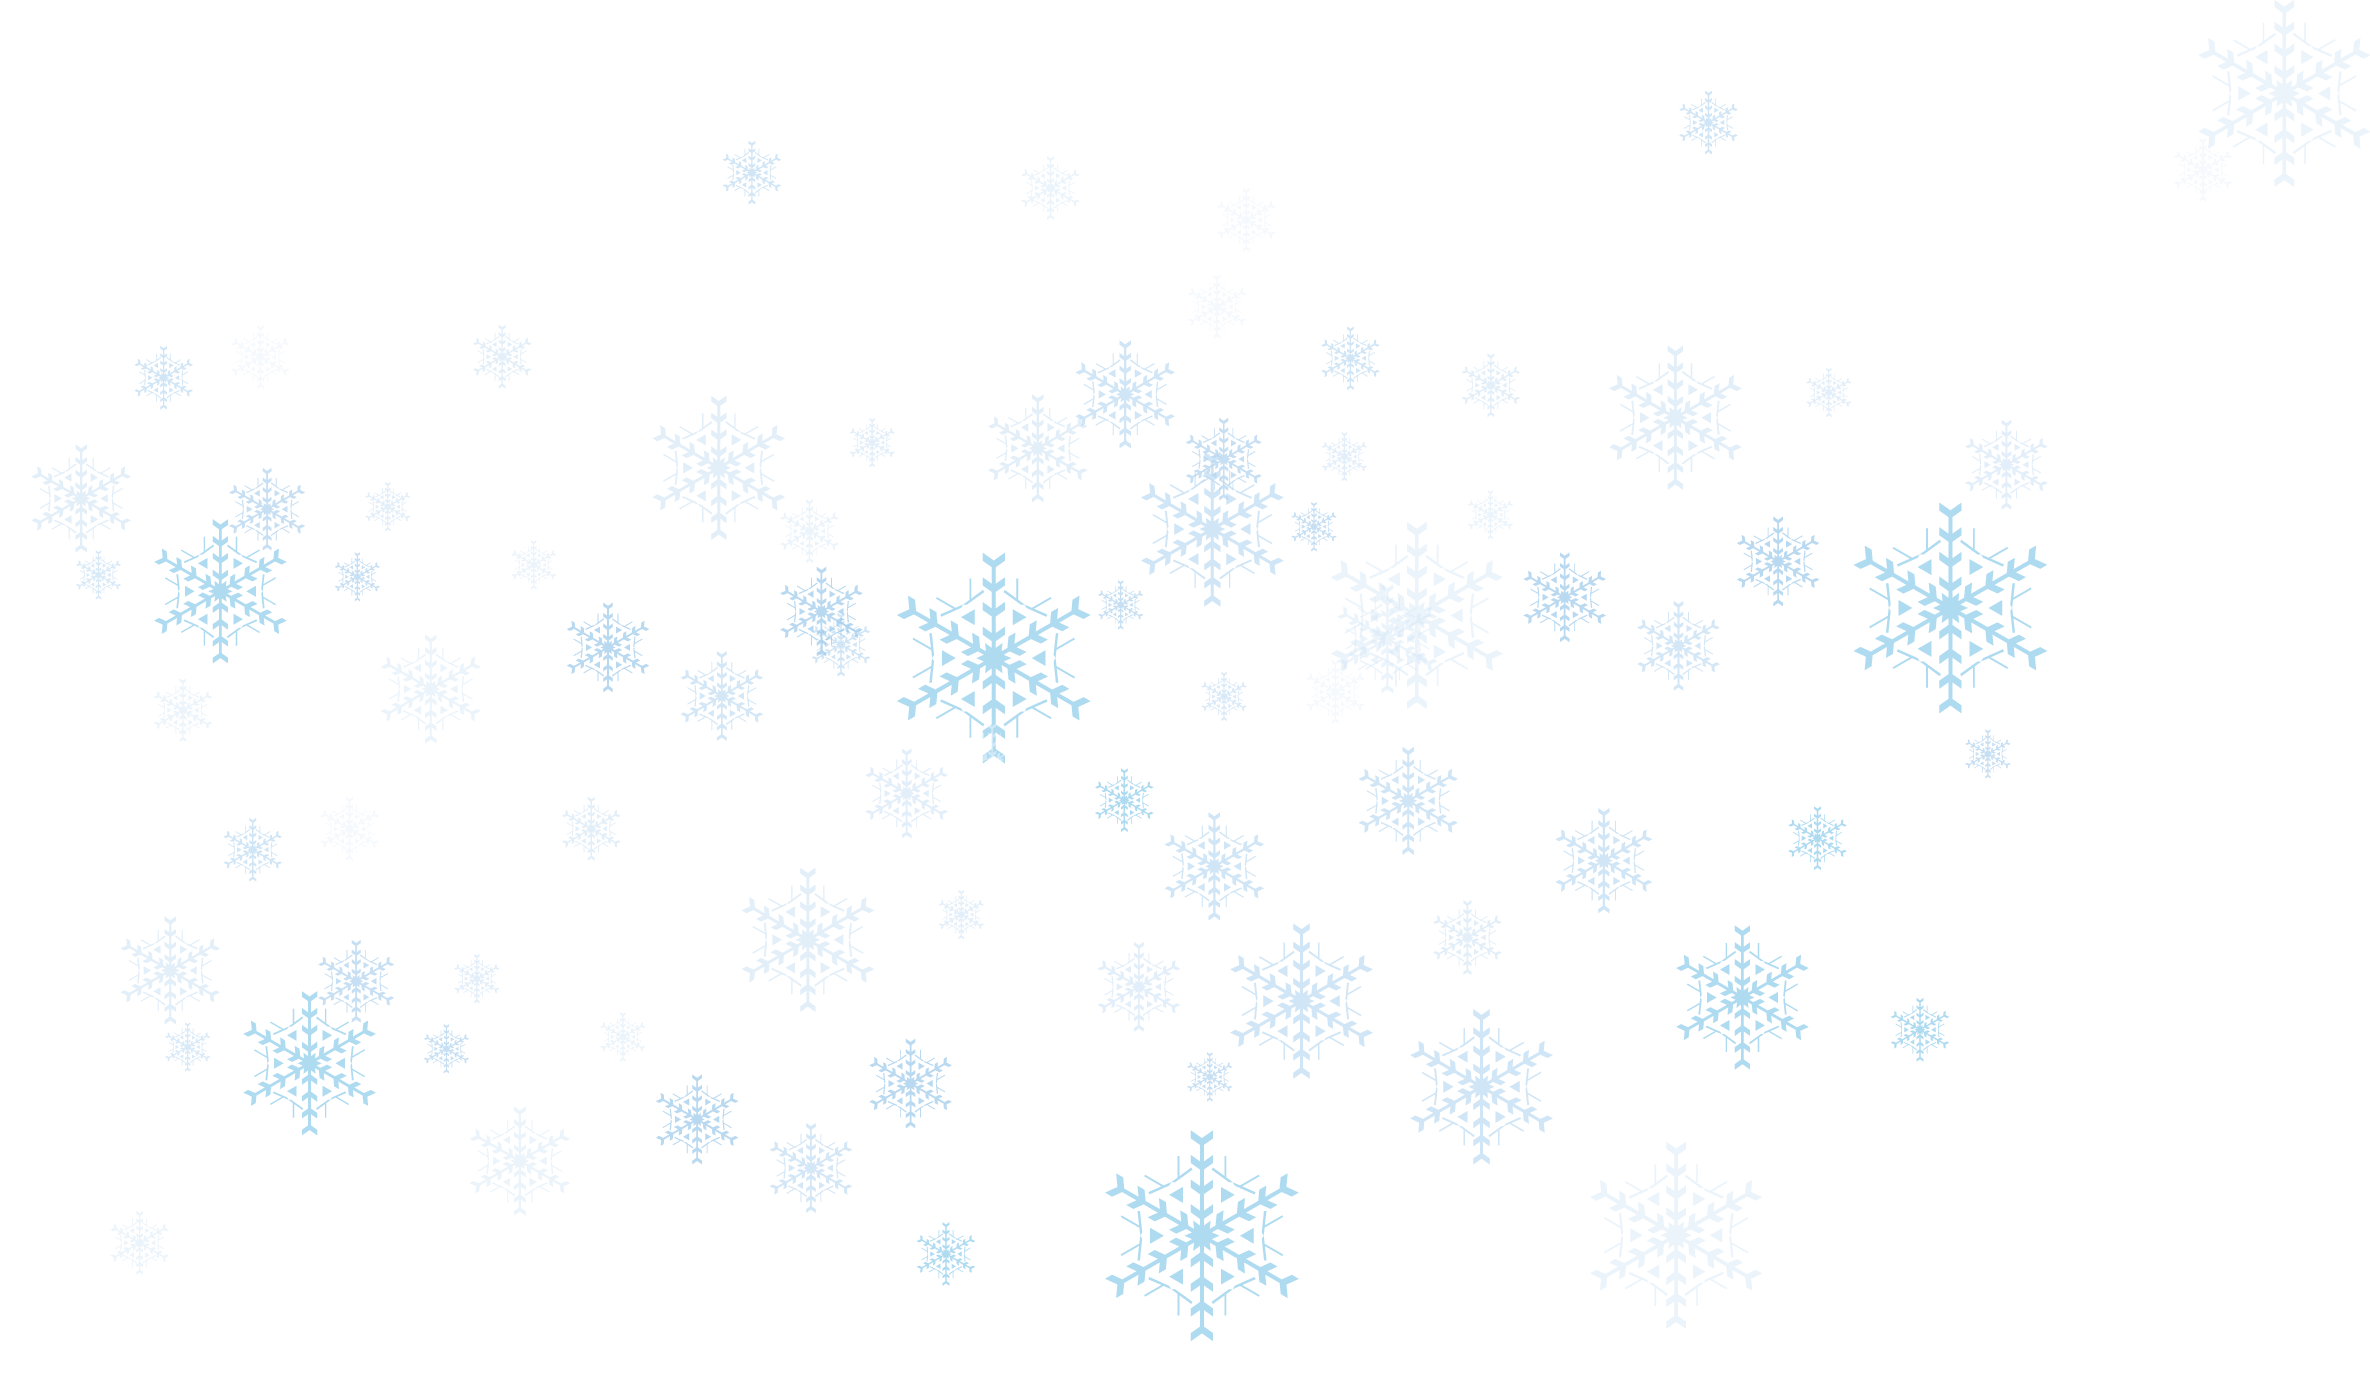 snowflake clipart transparent background 6 | Clipart Station for Snowflake Clipart Transparent Background  10lpwja